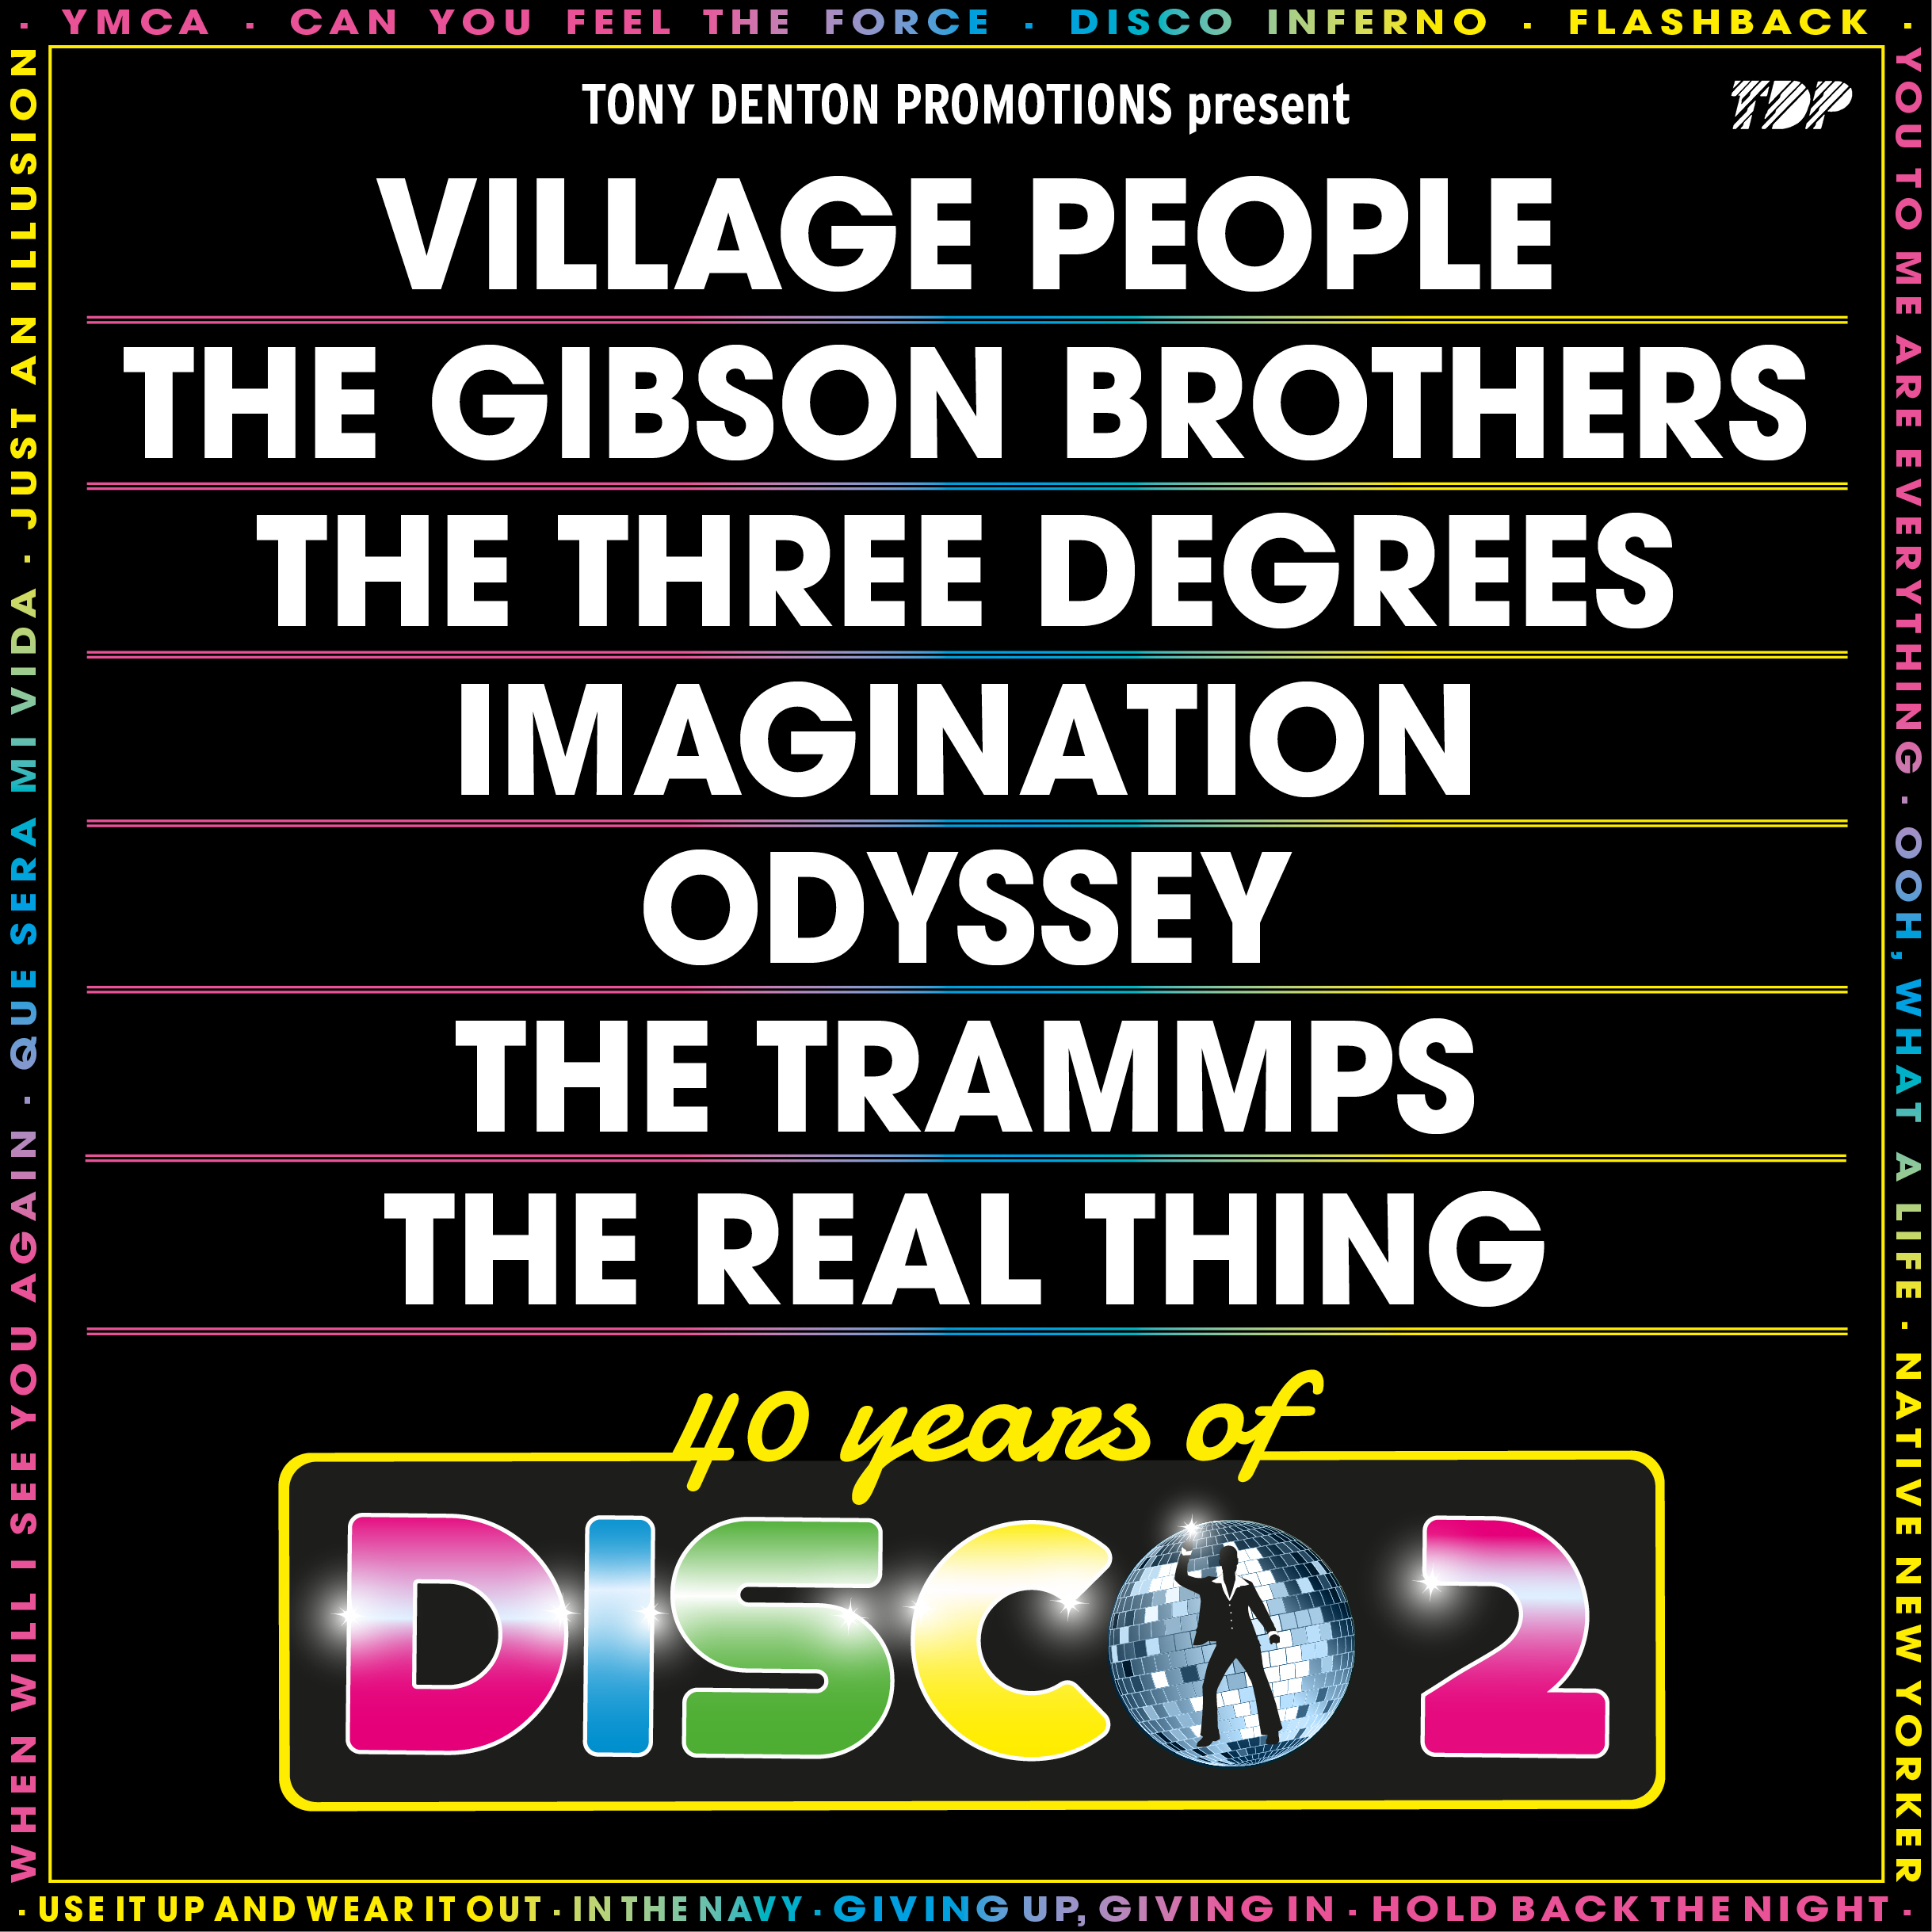 40-years-of-disco